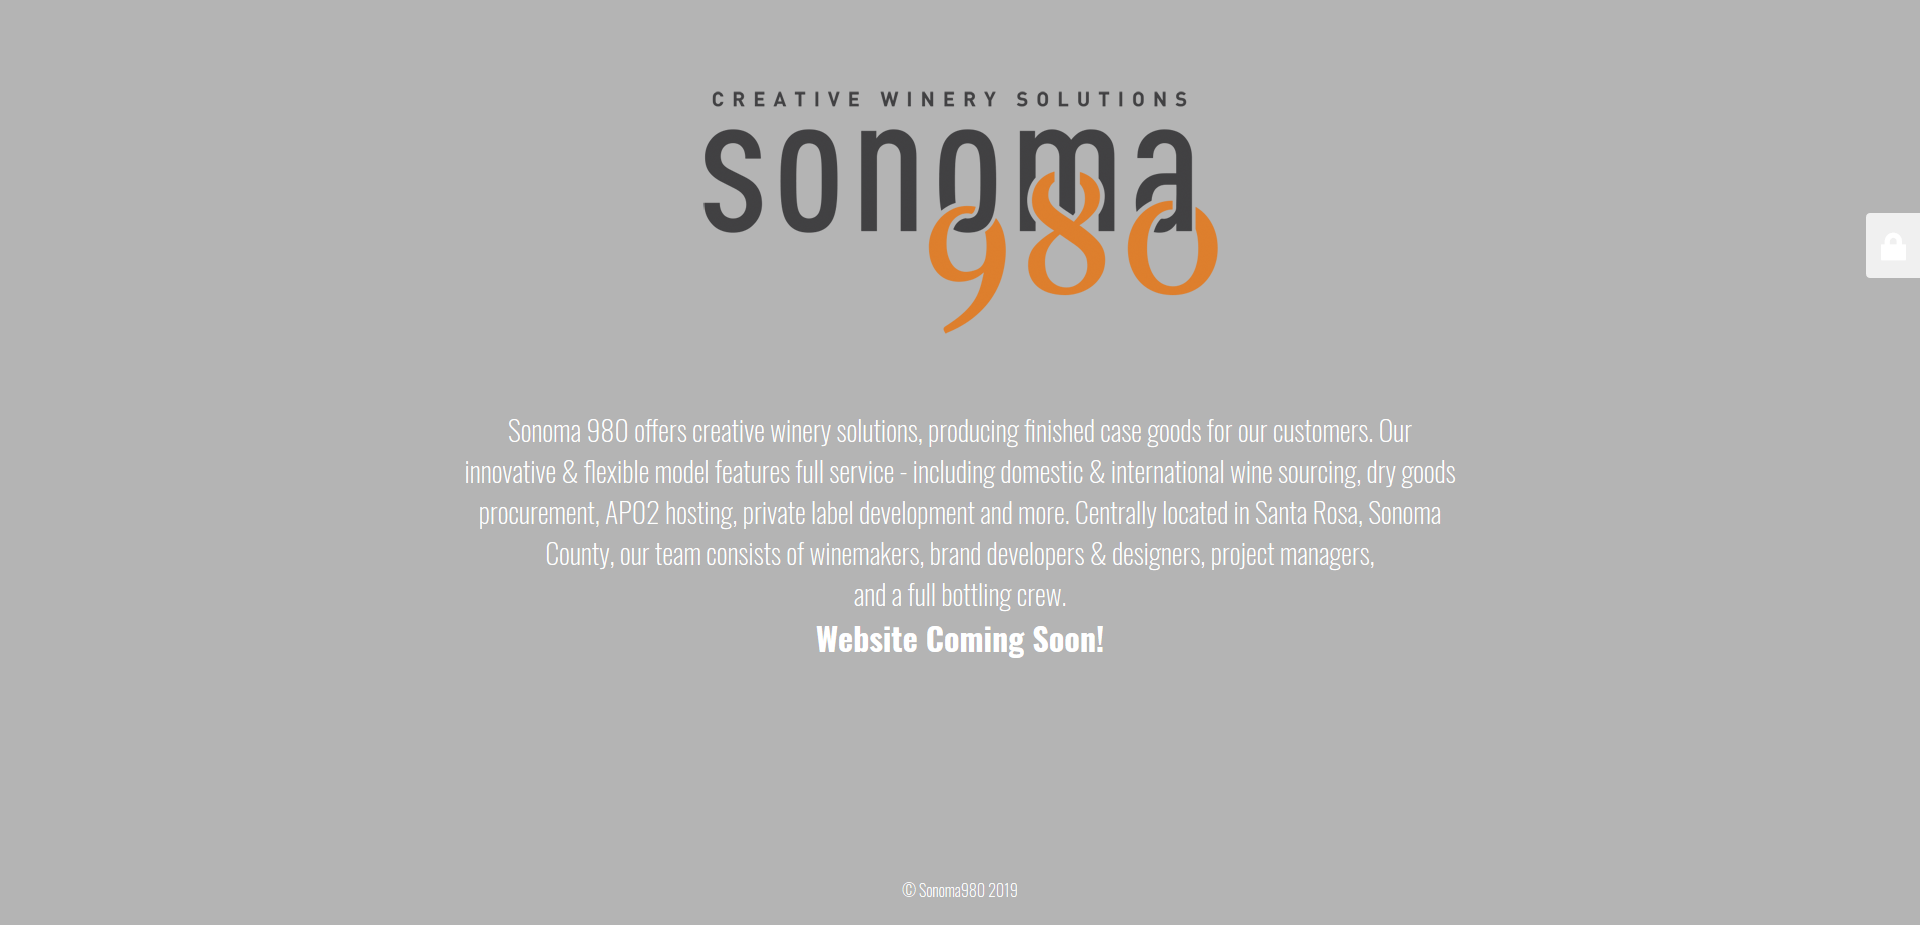 Screenshot of the Sonoma980 website